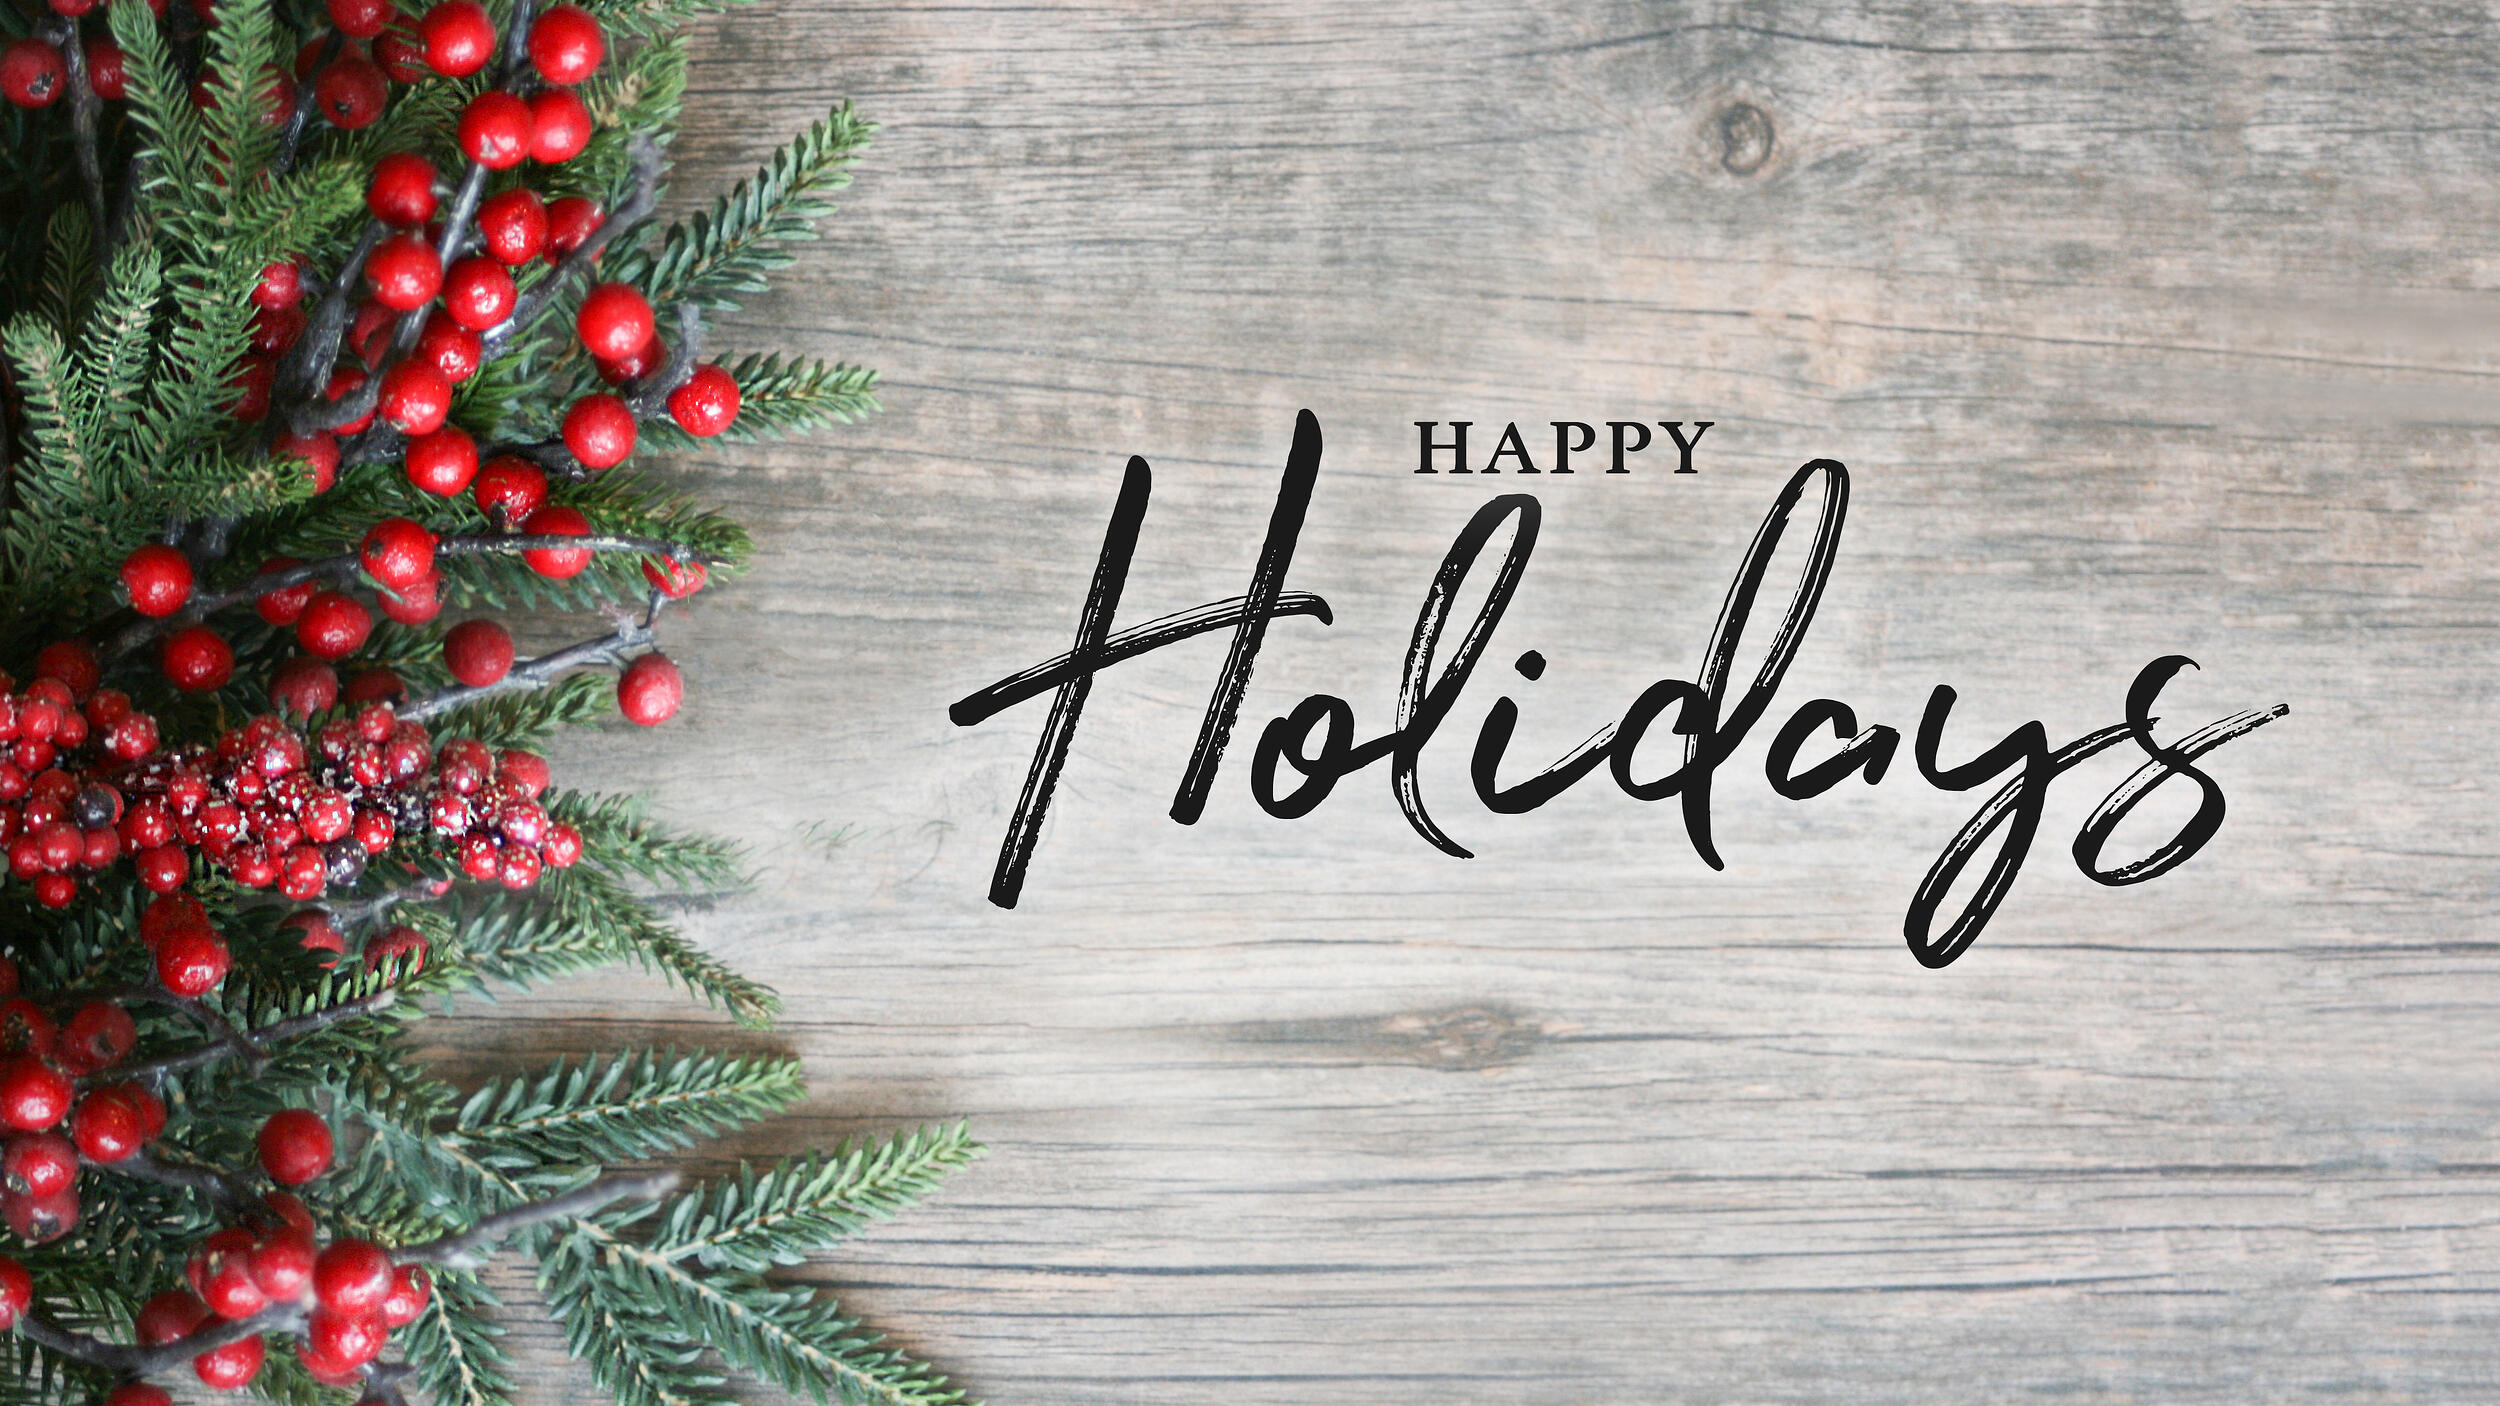 Happy holidays from SiteSeer!